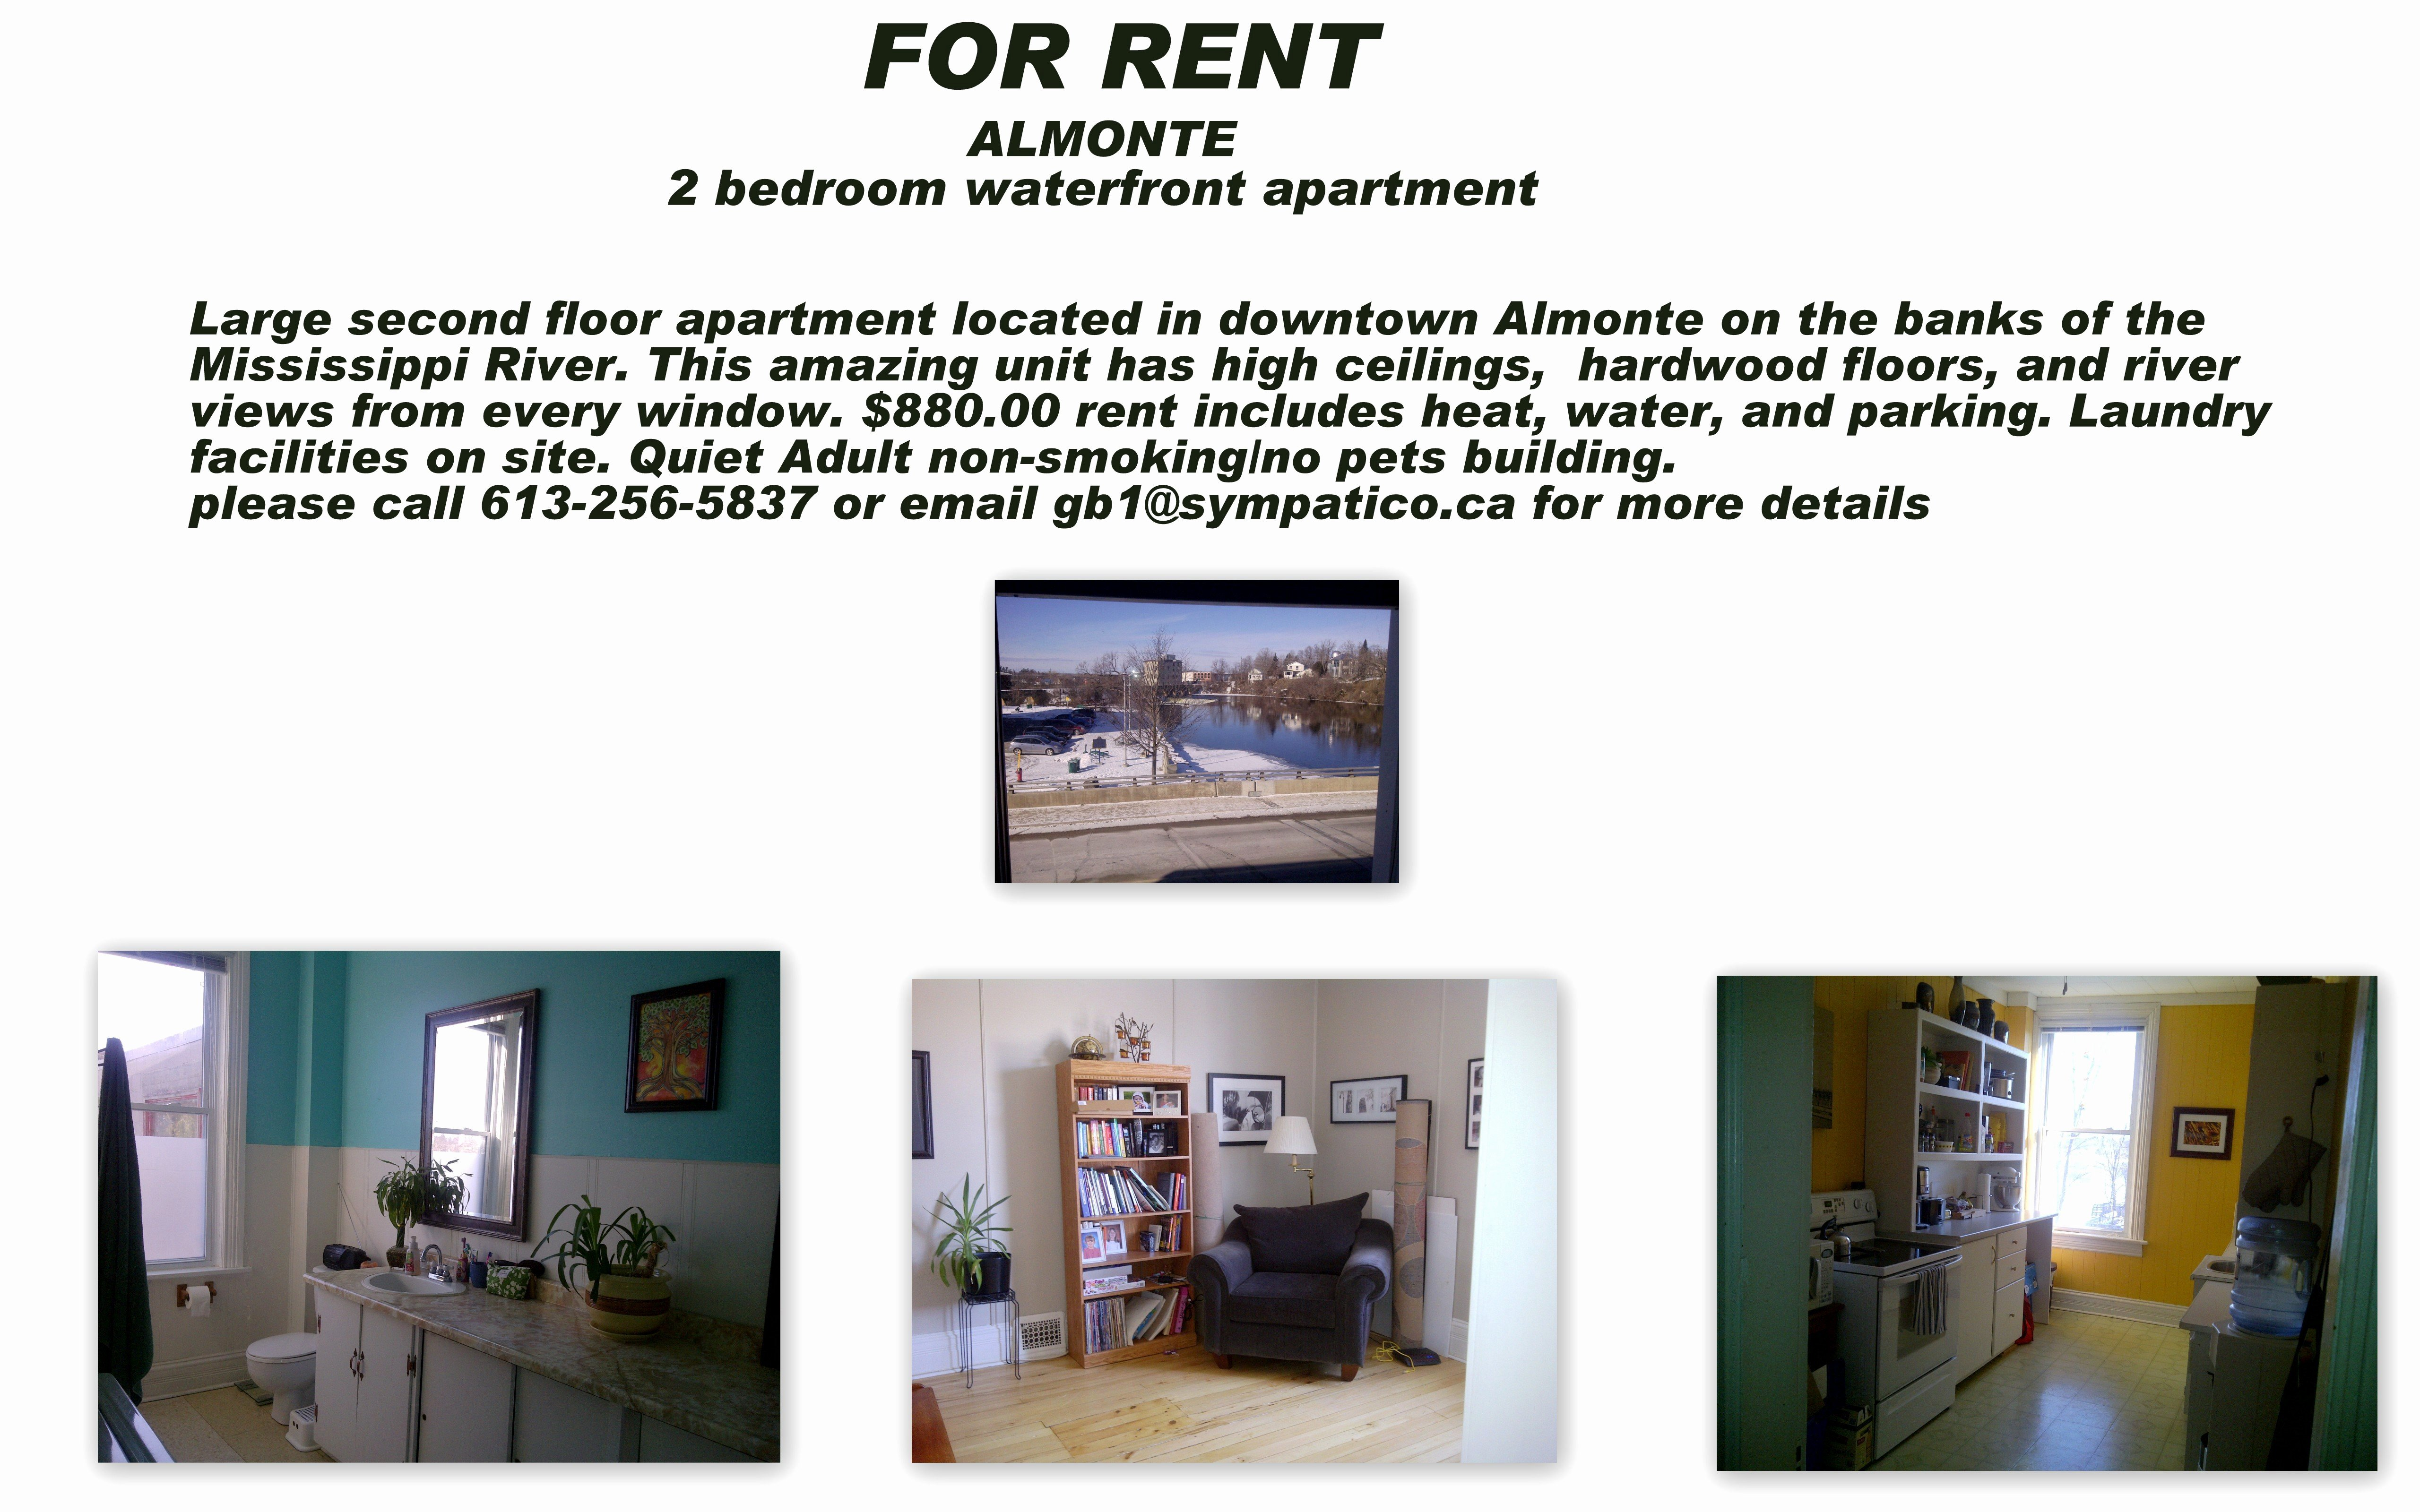 Apartment for Rent Flyer Template Awesome Apartment for Rent Ad Apartment for Rent Advertisement